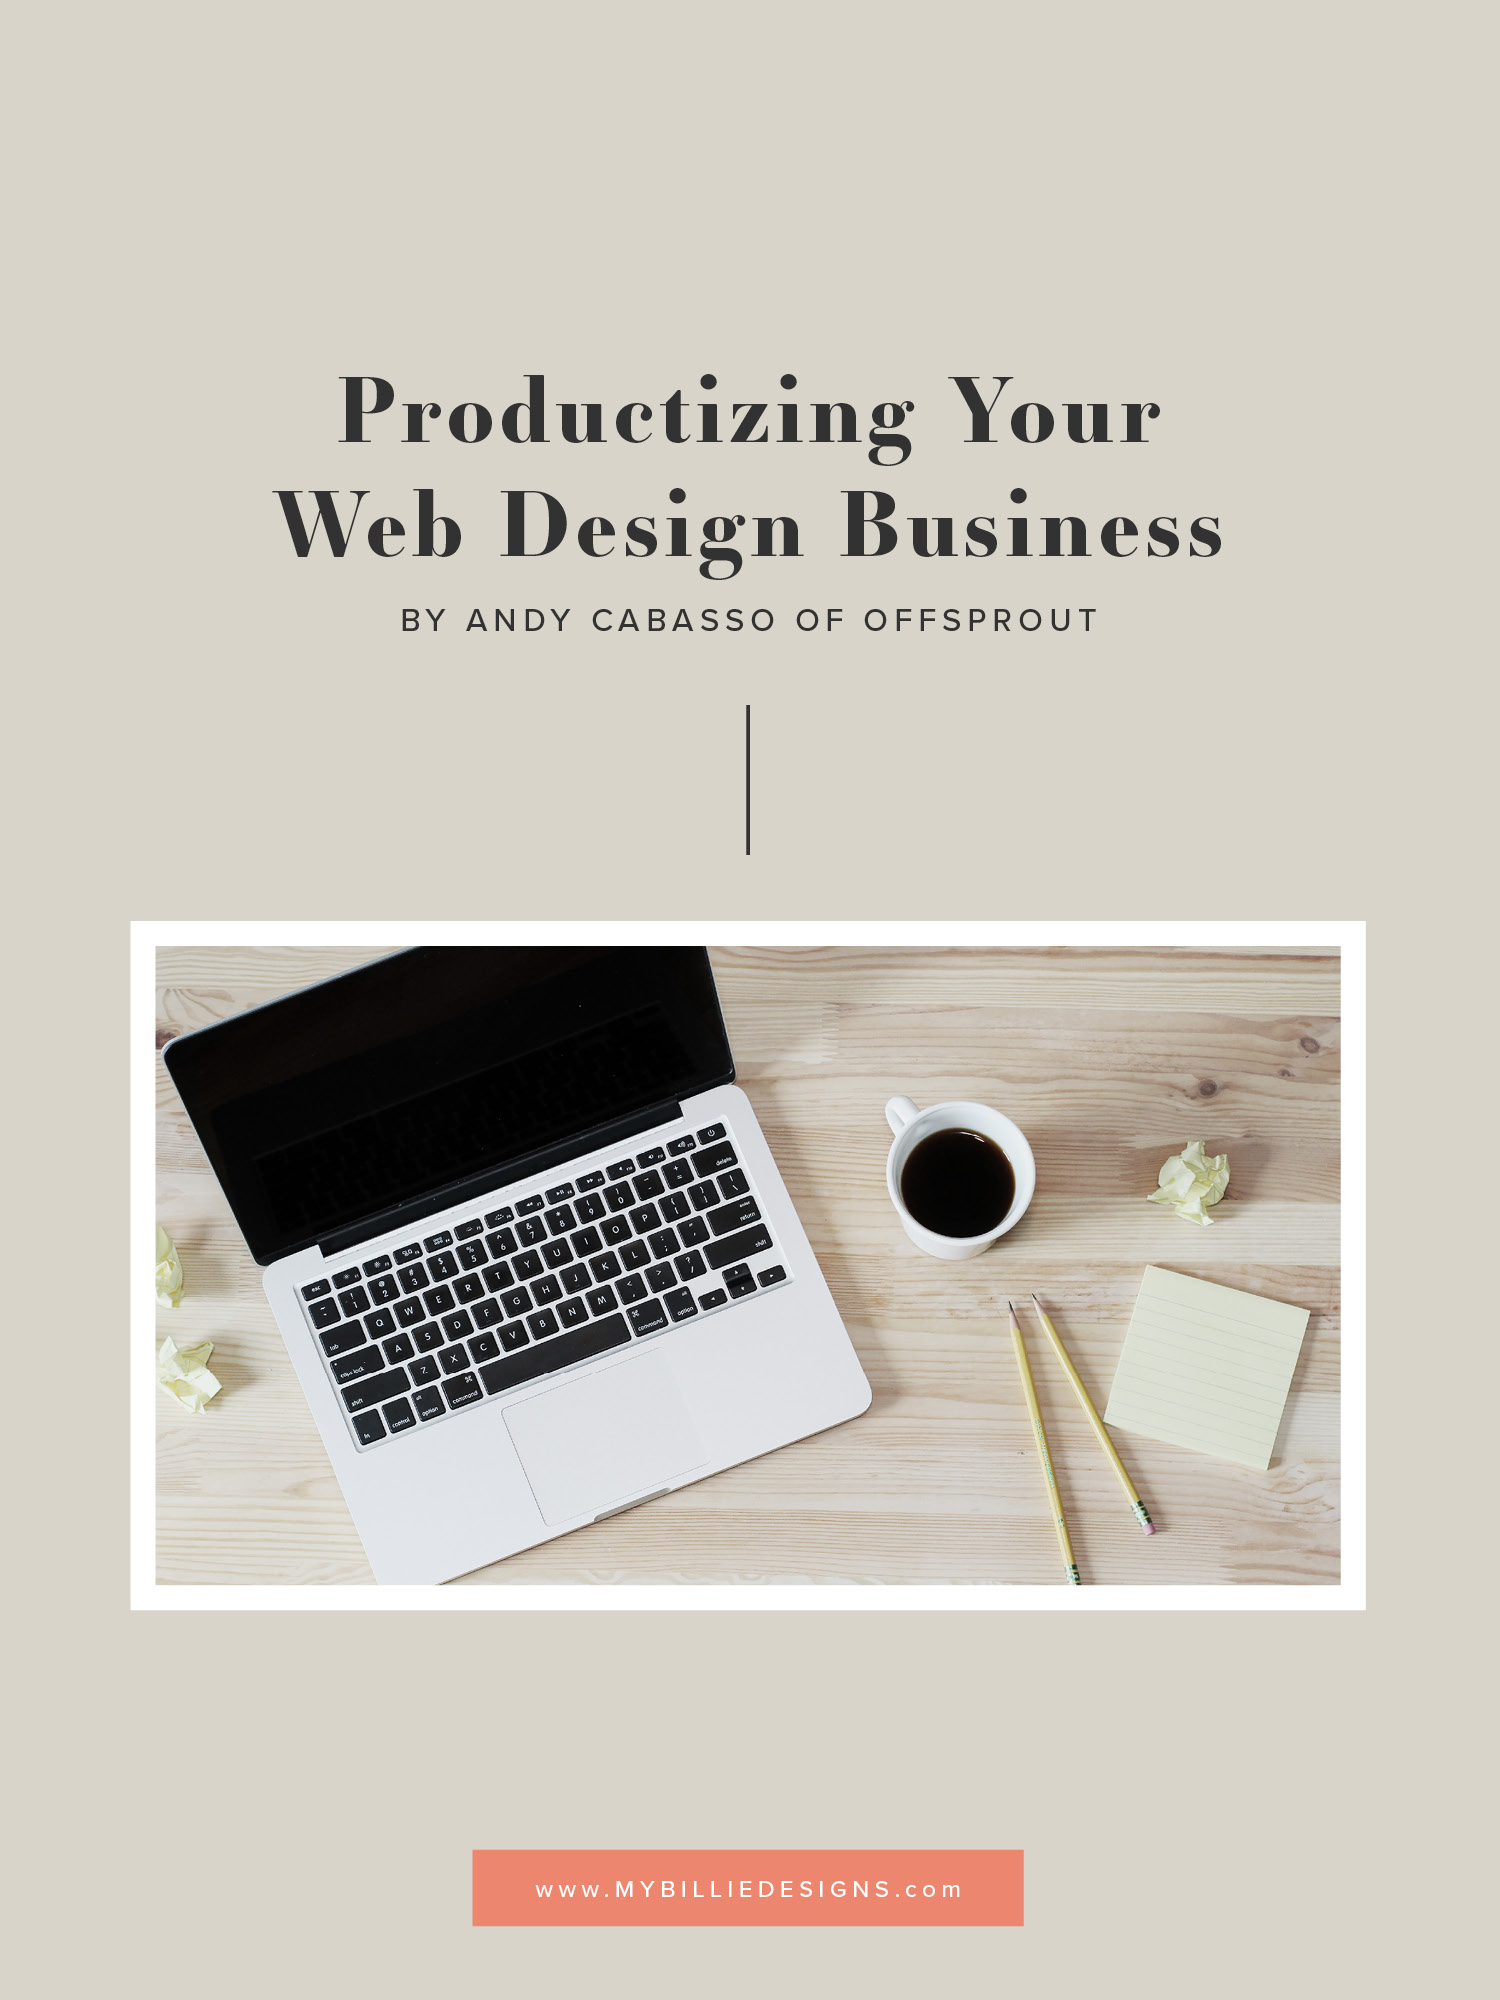 How to productize your web design business, a guest blog post by Andy Cabasso of Offsprout